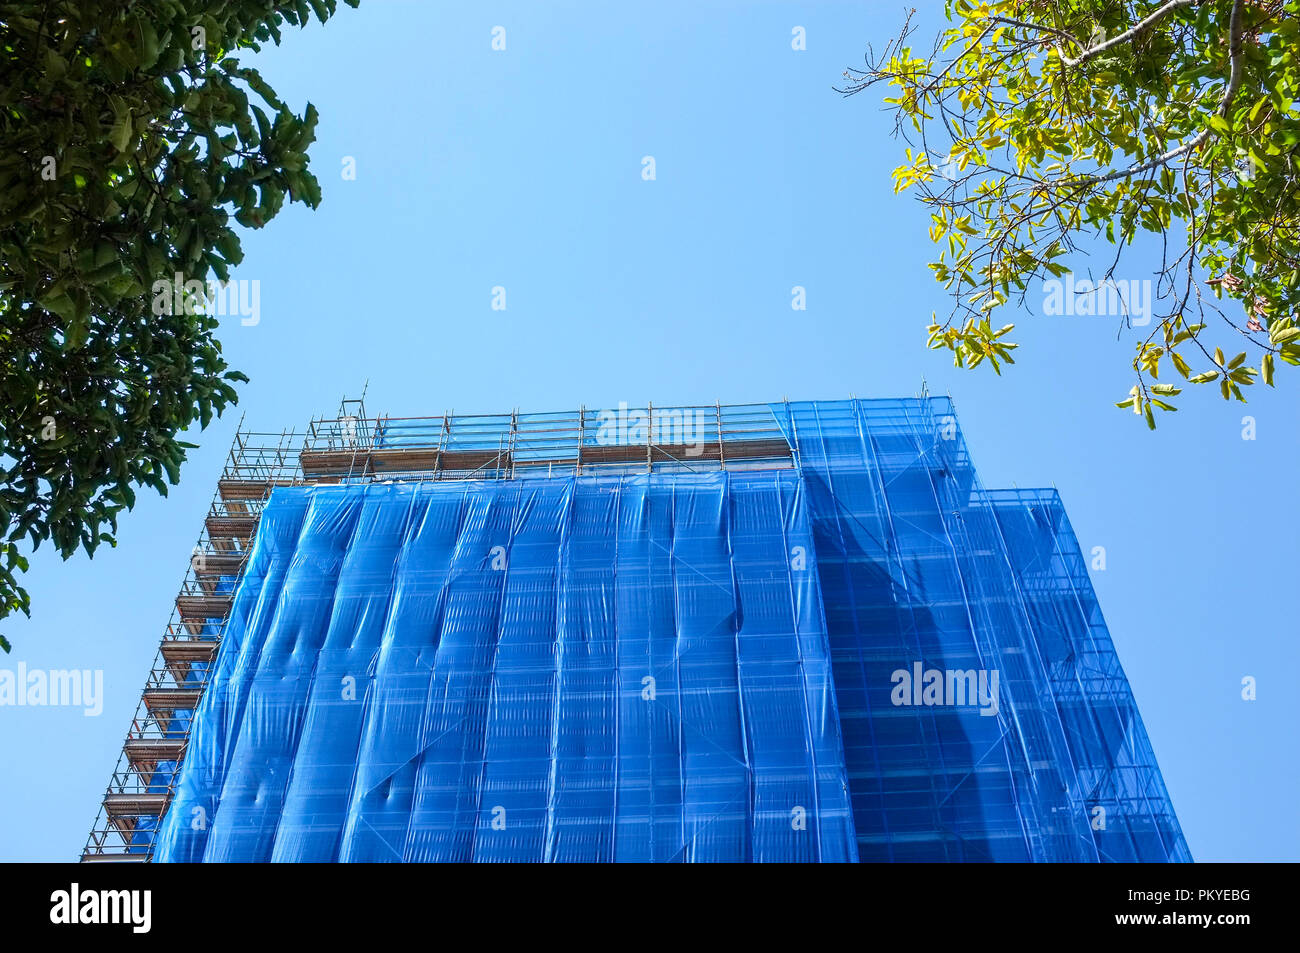 blue scaffolding over a building. - Stock Image